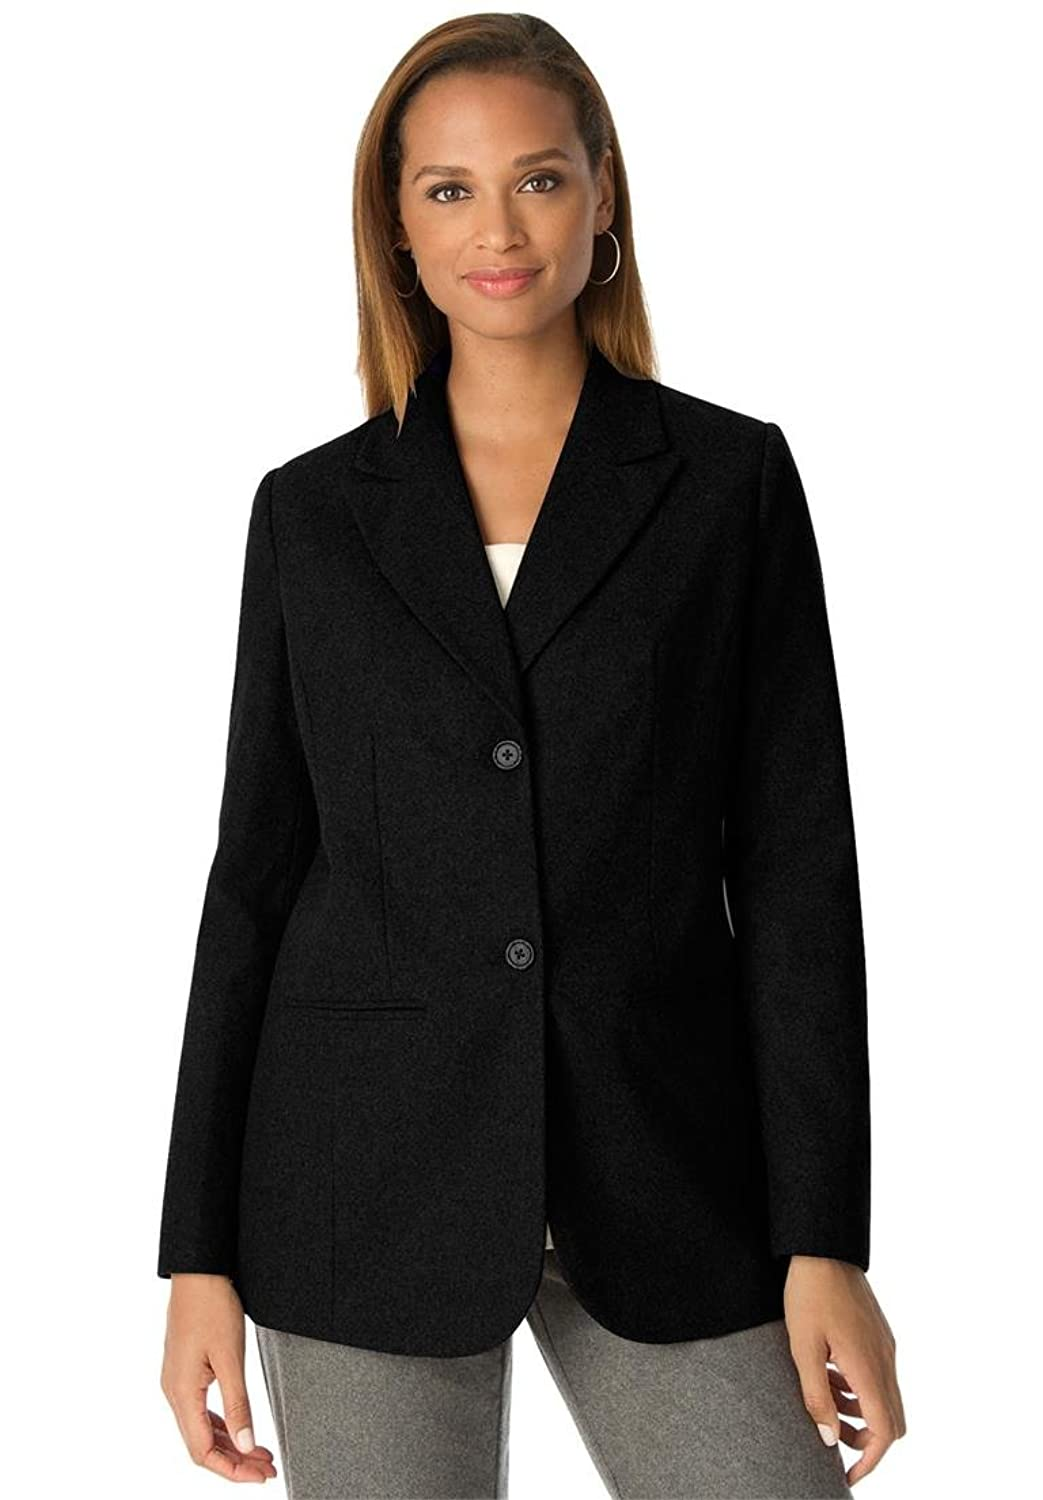 Shop women's jackets by Ralph Lauren. Discover women's jackets, blazers and more for fall and Winter at deletzloads.tk, the official site of Ralph Lauren Ralph Lauren. Be the First to Know Wool-Blend Trench Coat $ Take 30% off Polo Ralph Lauren Glen Plaid Wool Trench $ Take 30% off Polo Ralph Lauren Glen Plaid Wool Trench.